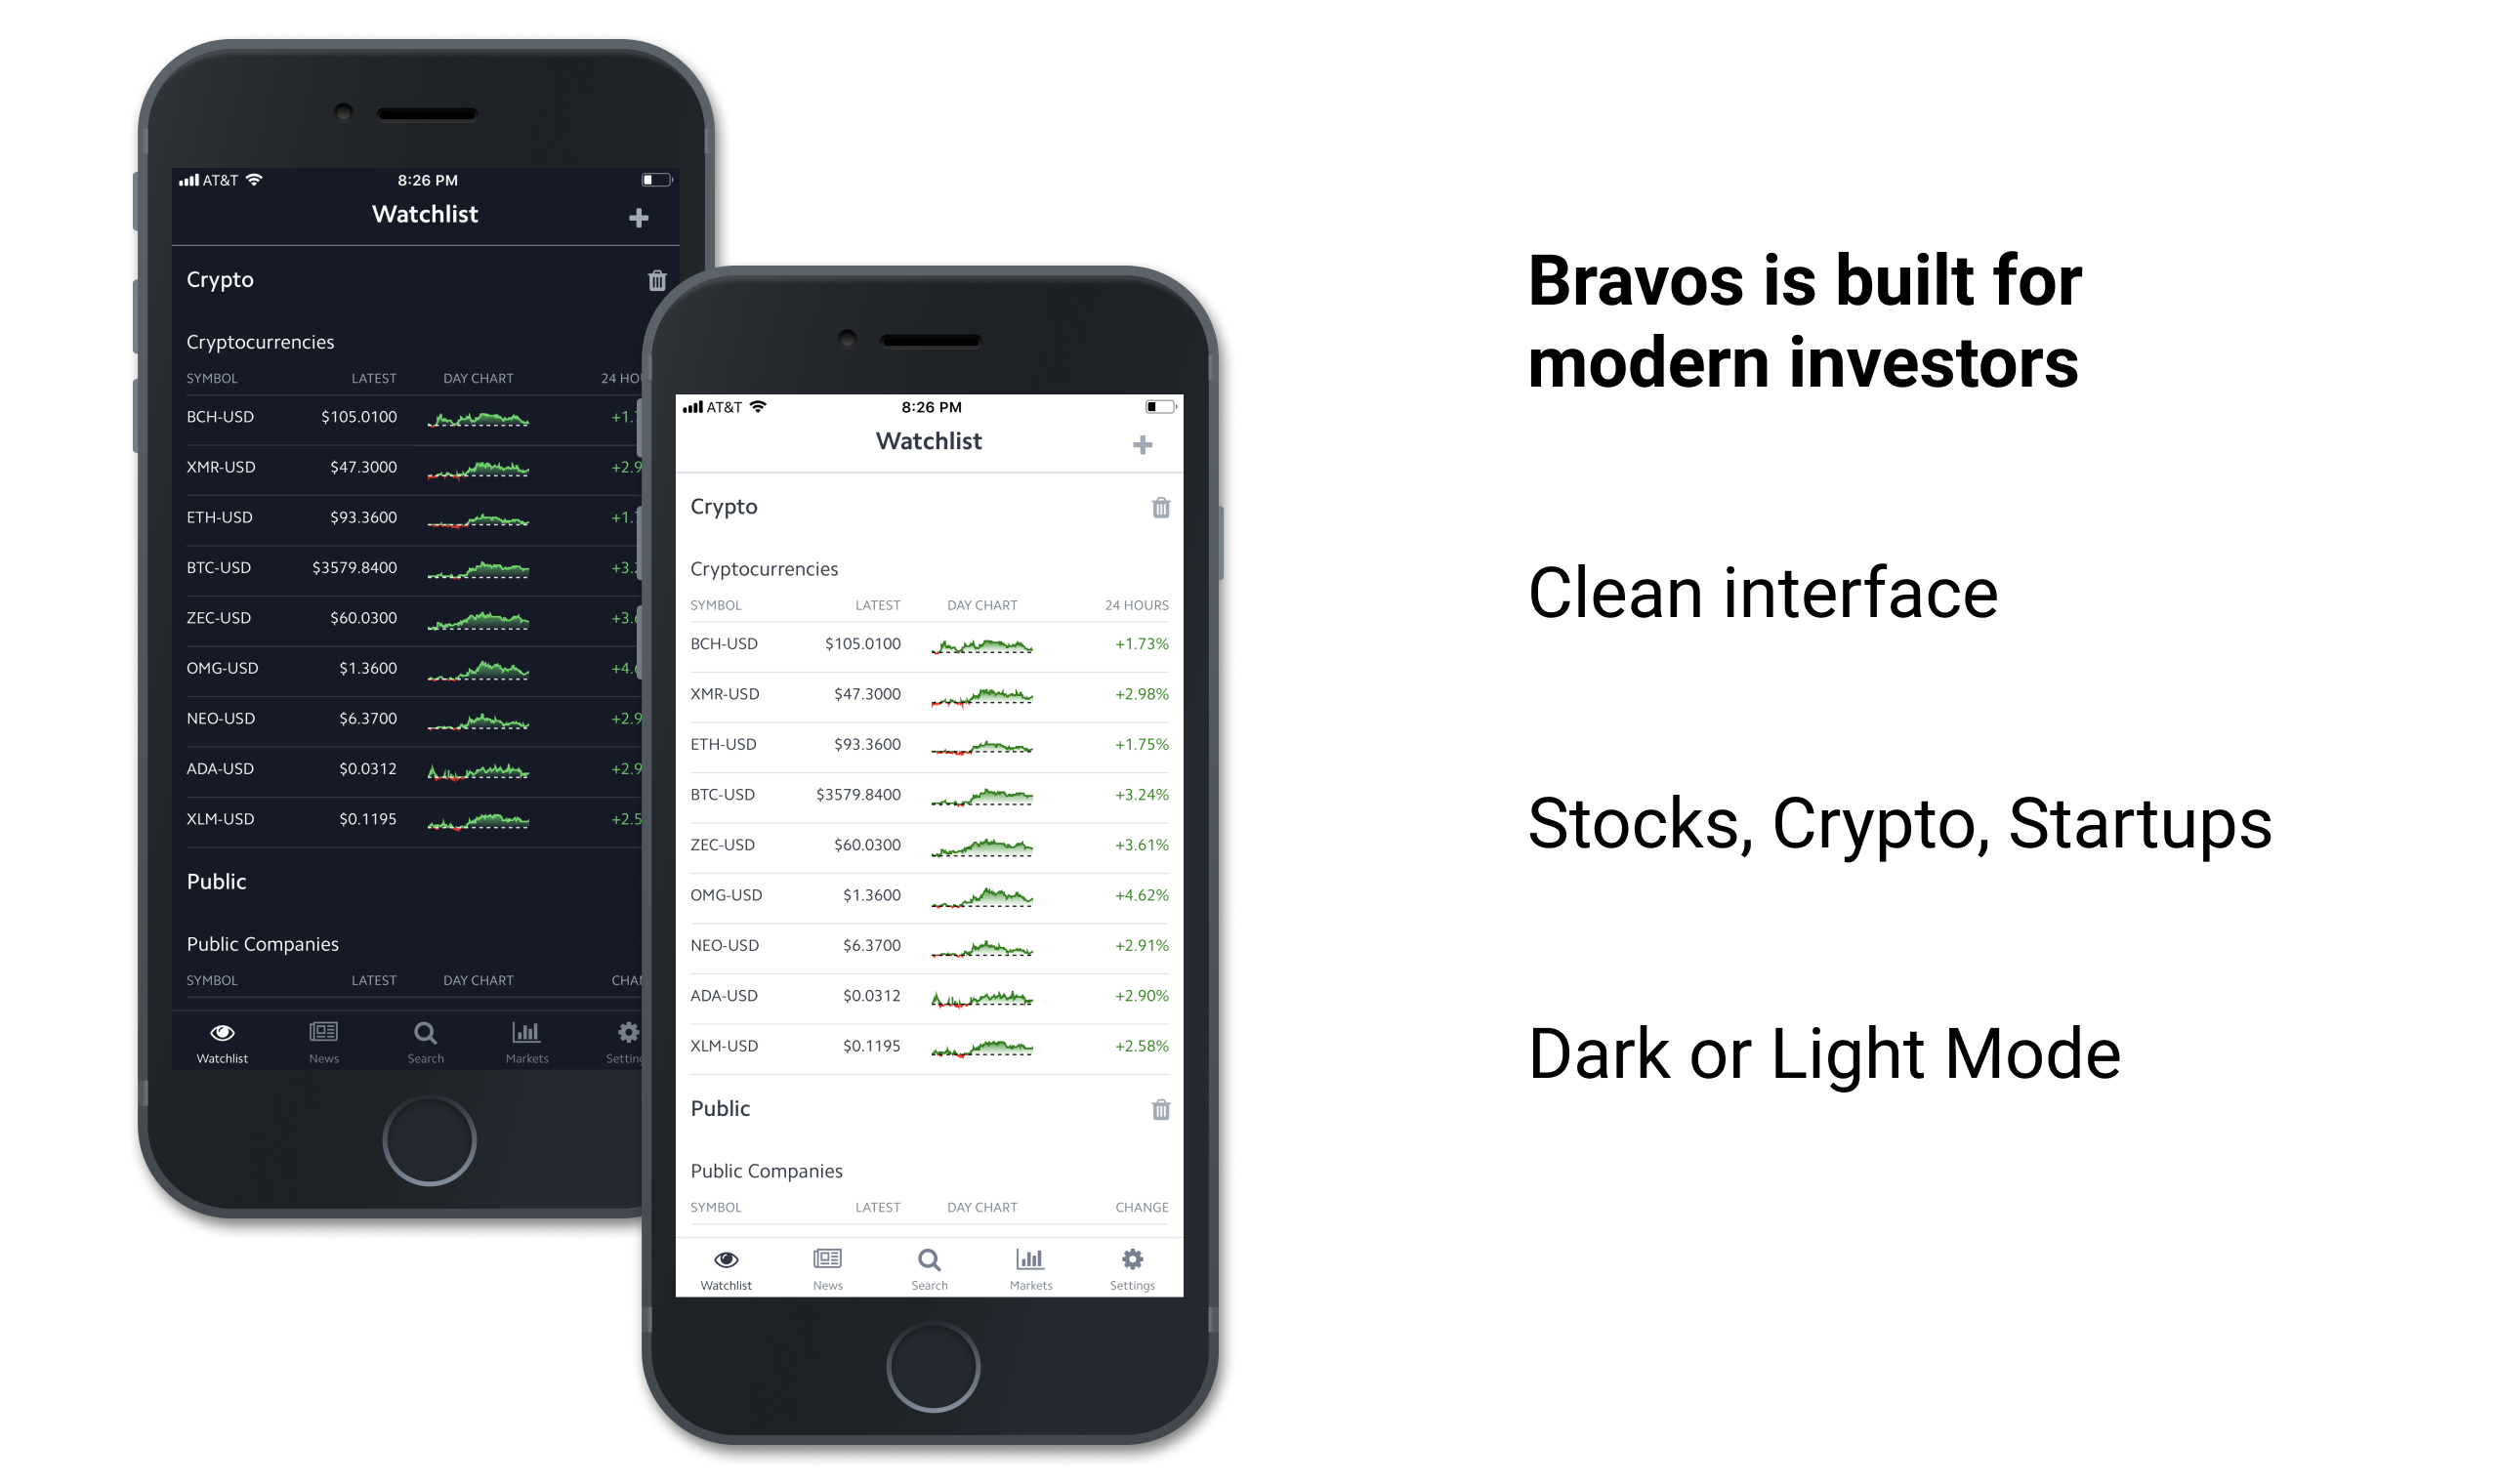 Bravos - Modern replacement for Google Finance